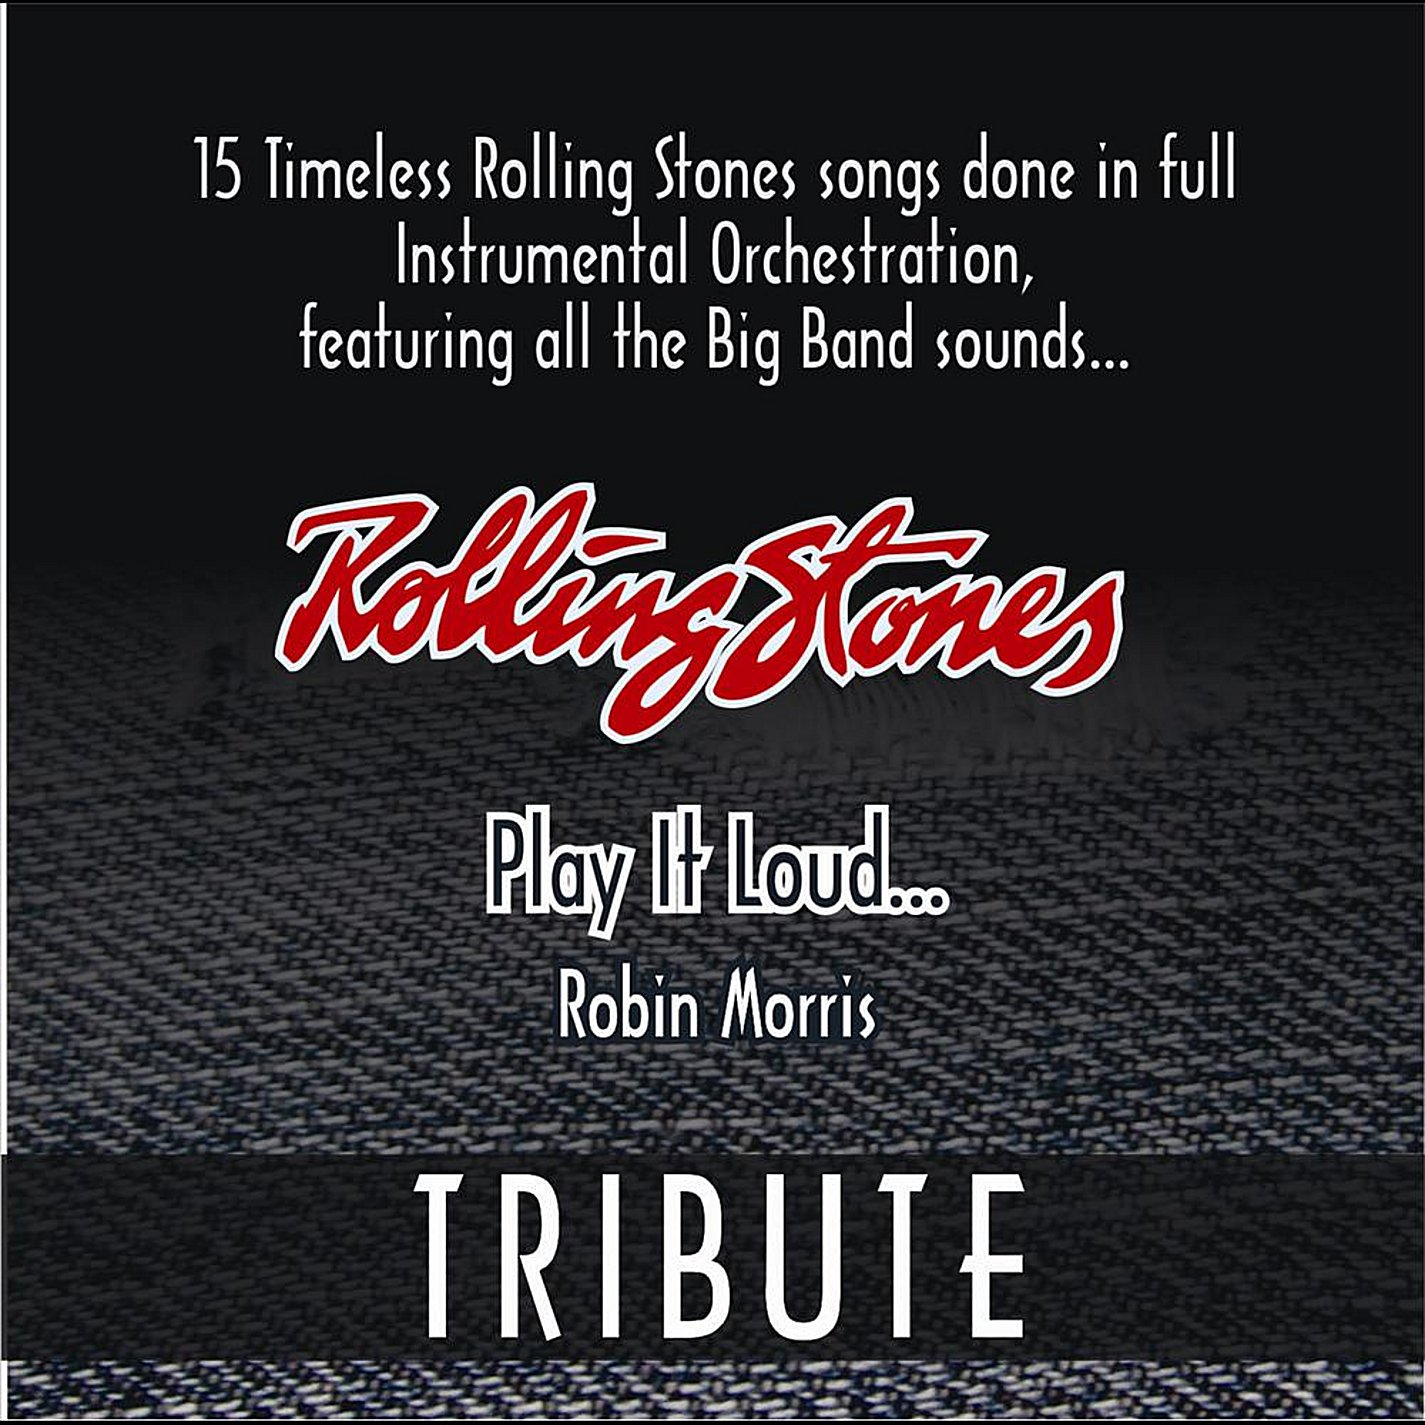 Instrumental Orchestral Tribute to Rolling Stones by CD Baby